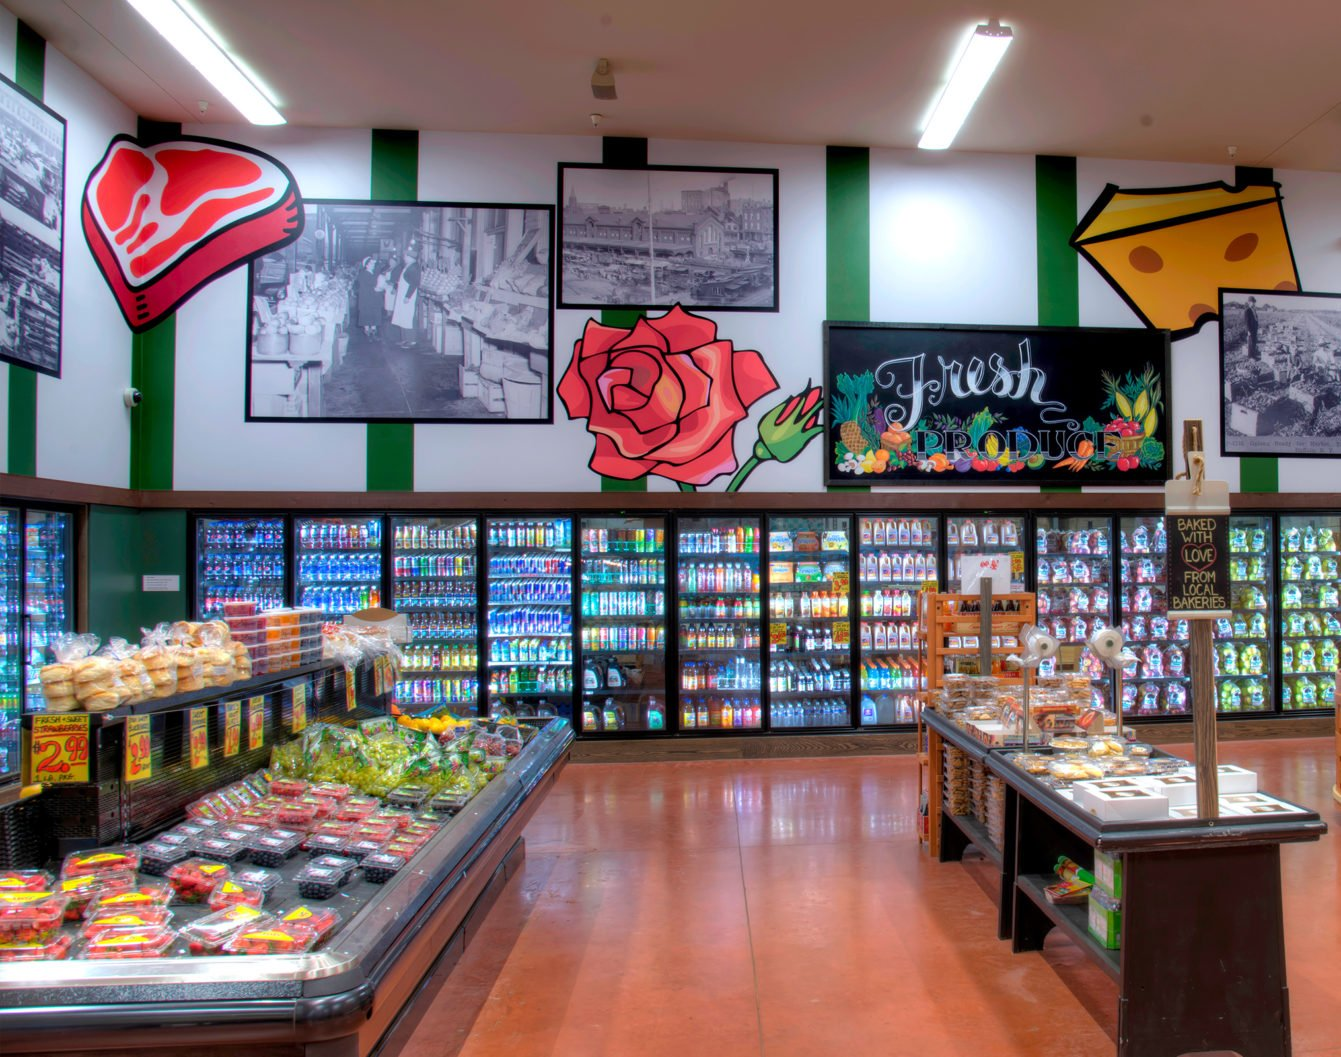 Digital grocery store